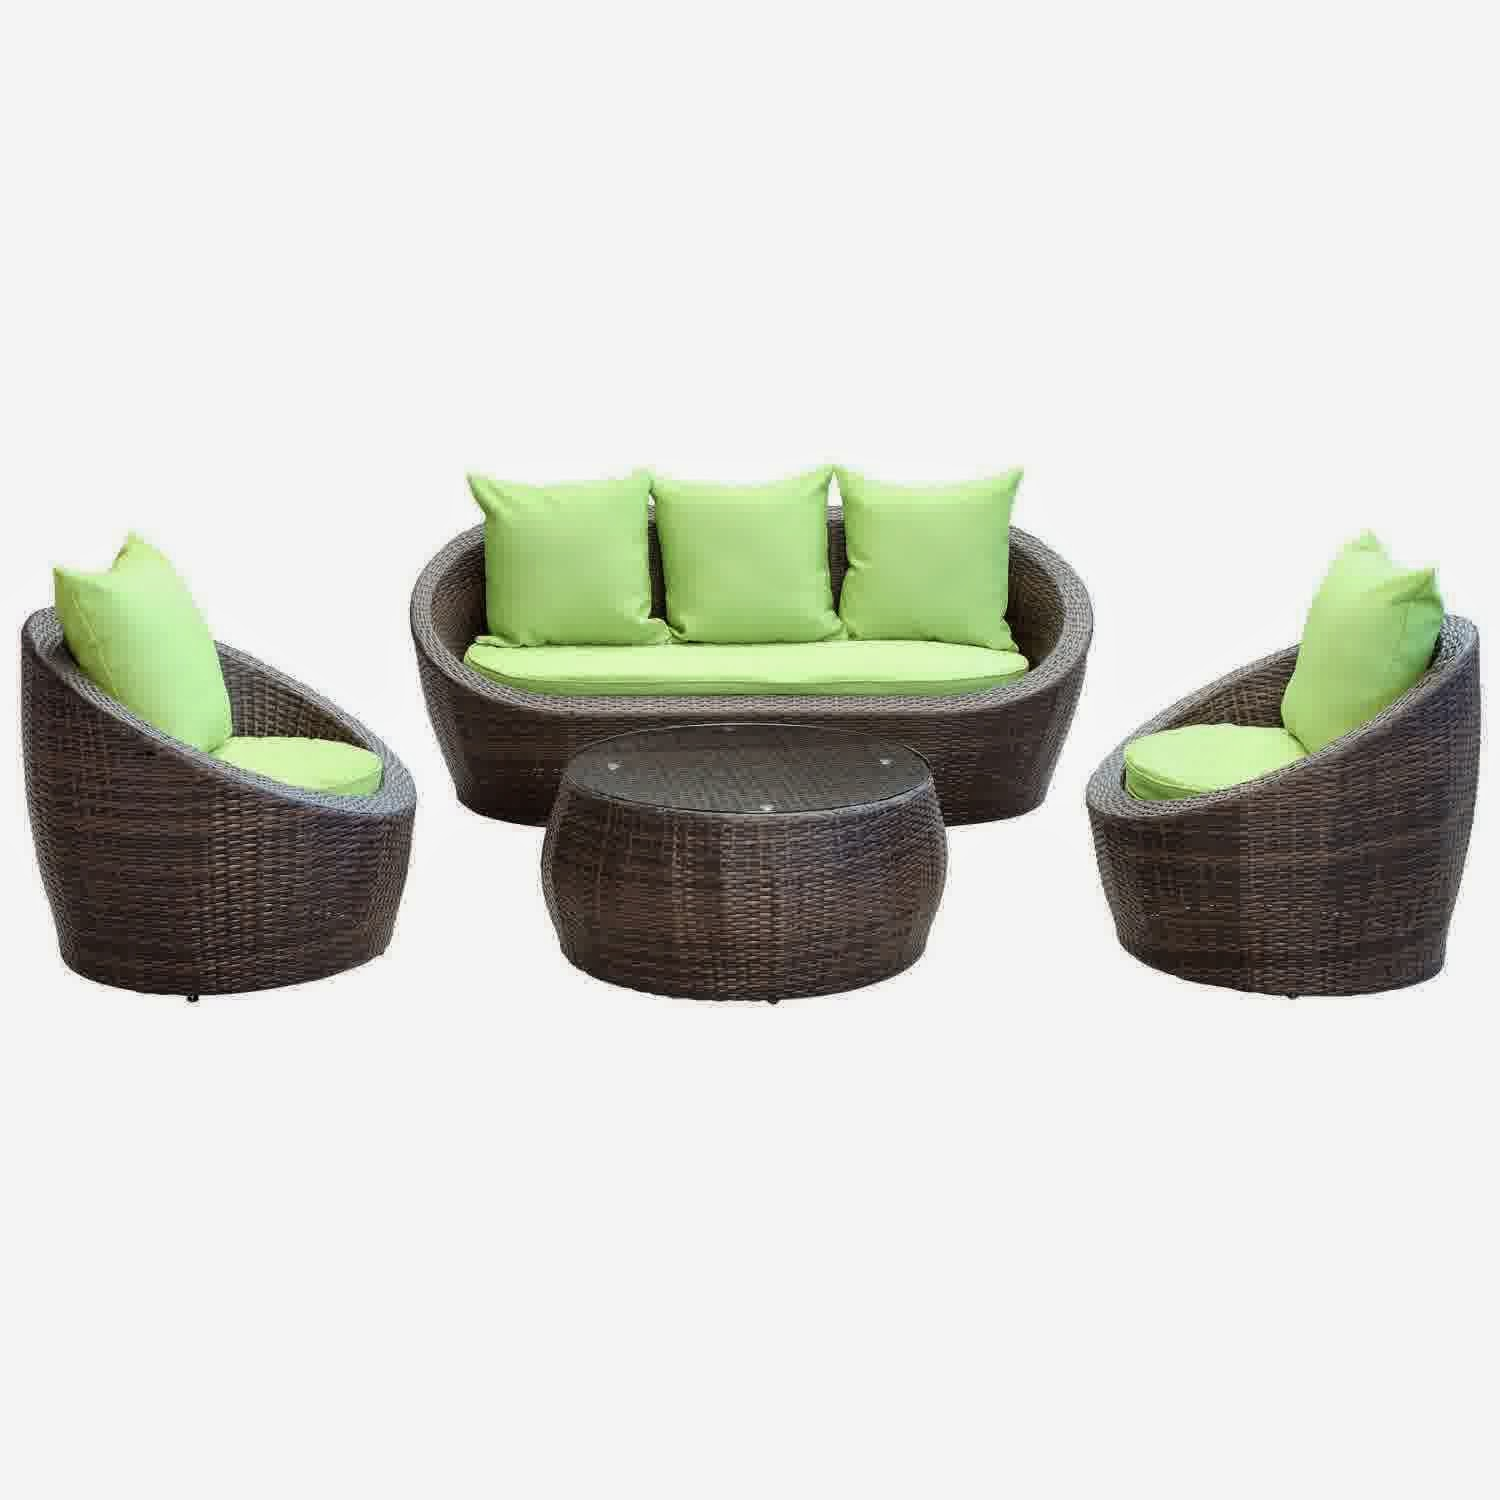 avo outdoor wicker patio 4 piece sofa set in brown with green cushions